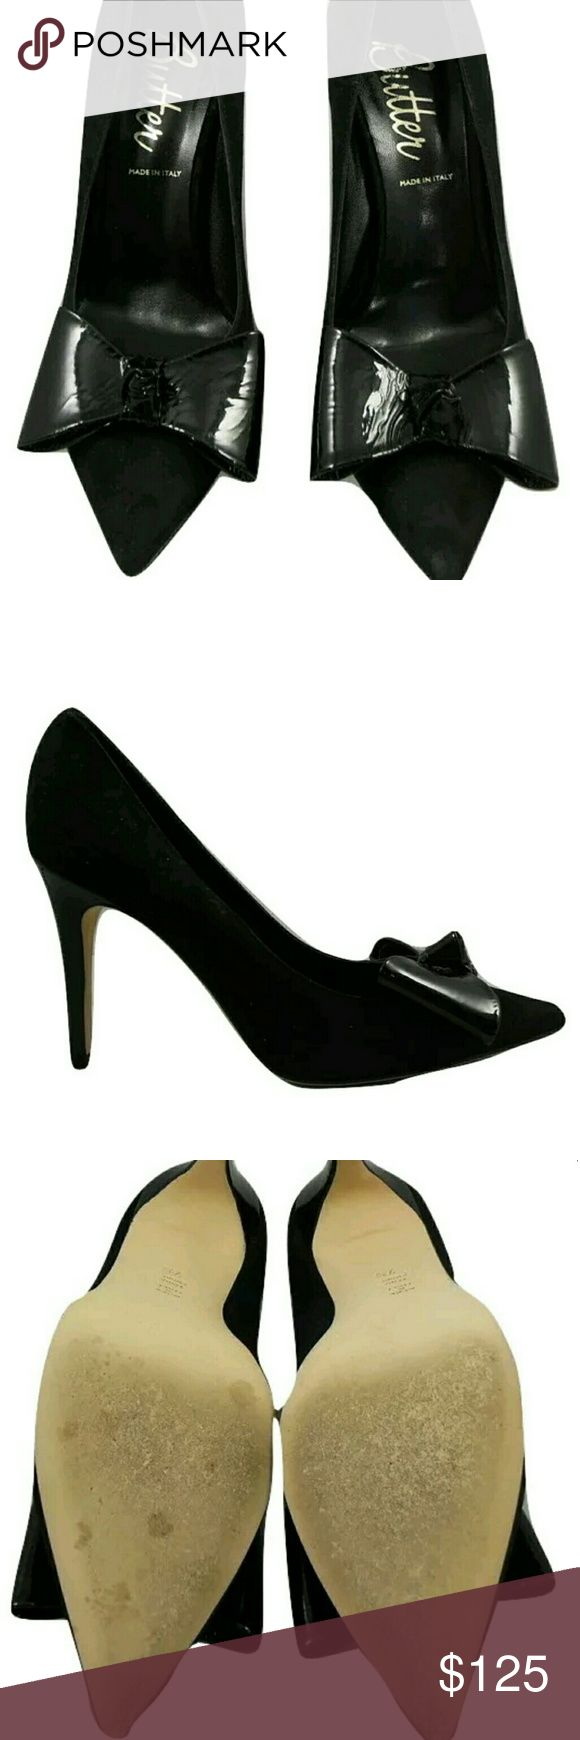 """Butter Black Suede Delphine Pumps New in original box. Patent leather bow detail at pointed-toe Patent leather covered heel Leather insole and leather sole Measurements: Heel height 3"""" Material: Suede, patent leather Brand: Butter Origin: Italy Butter Shoes Shoes Heels"""